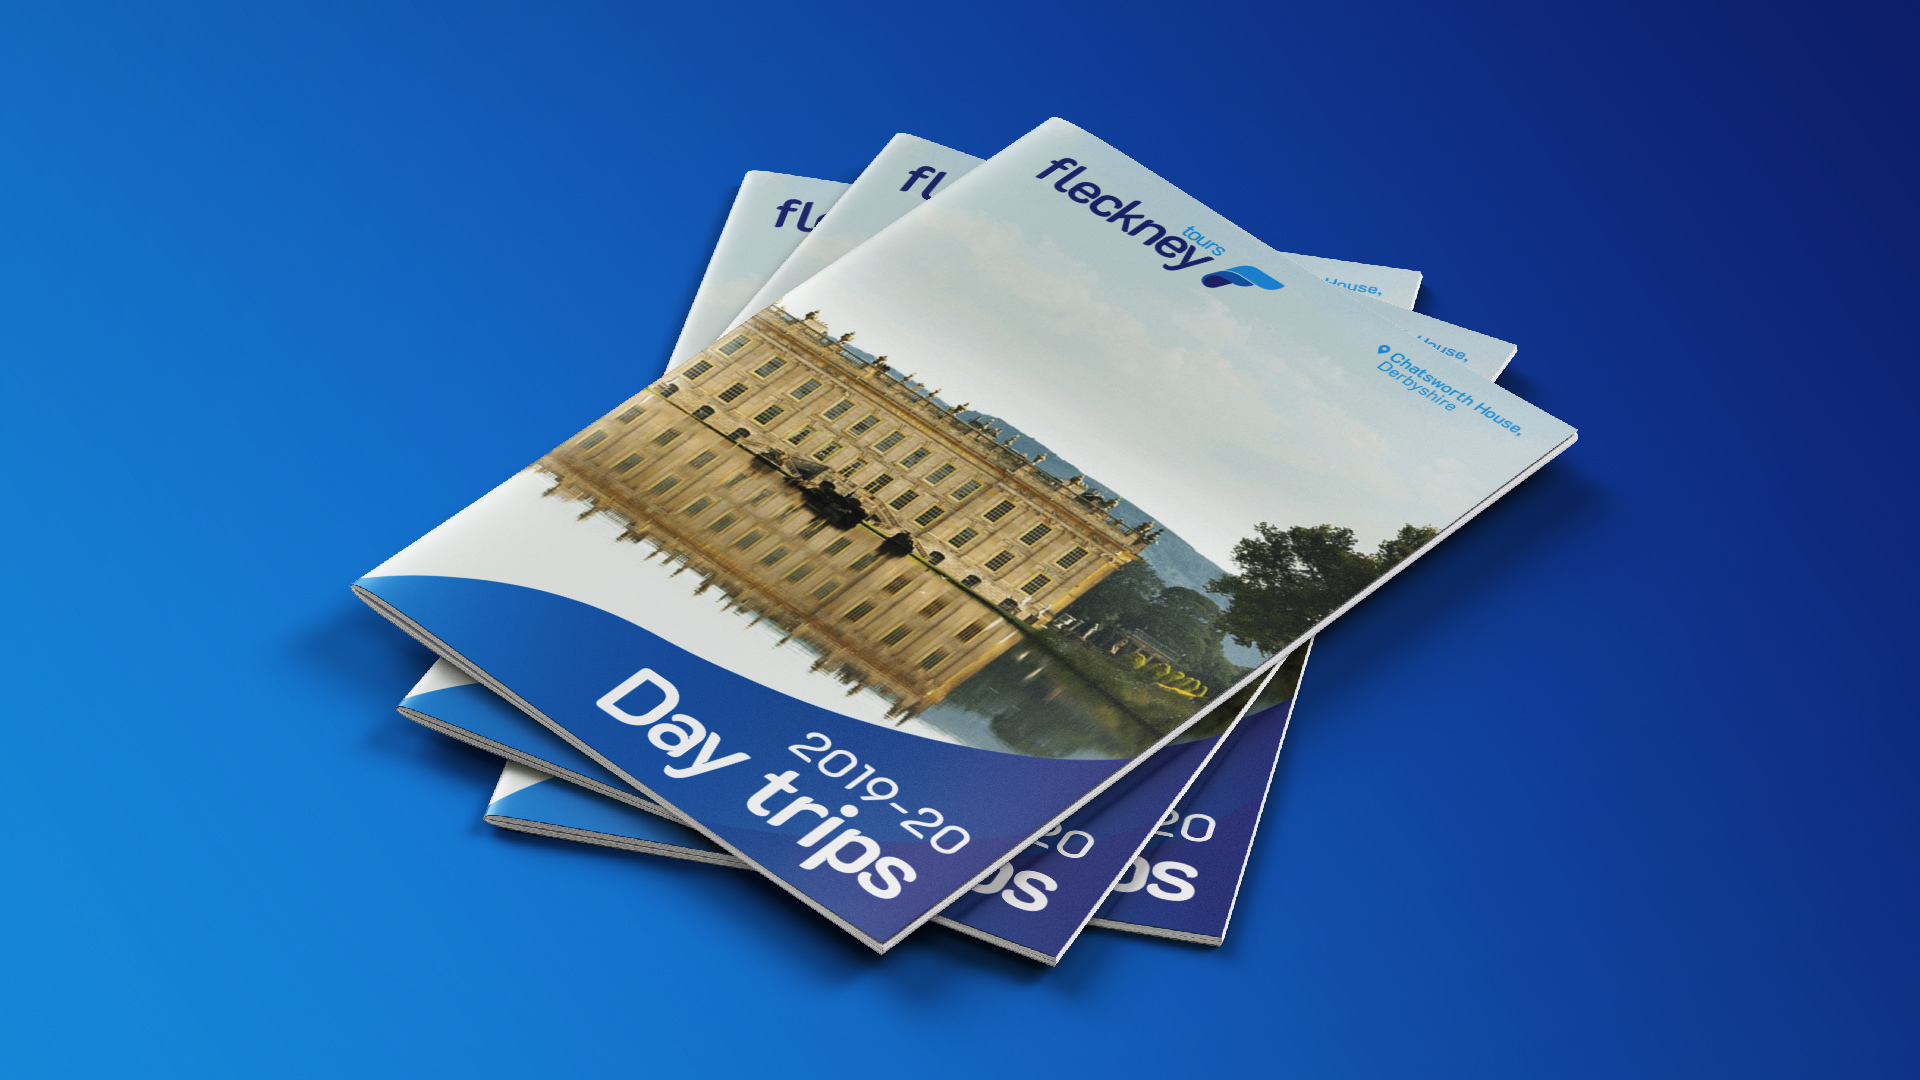 Fleckney Group Brochure Design